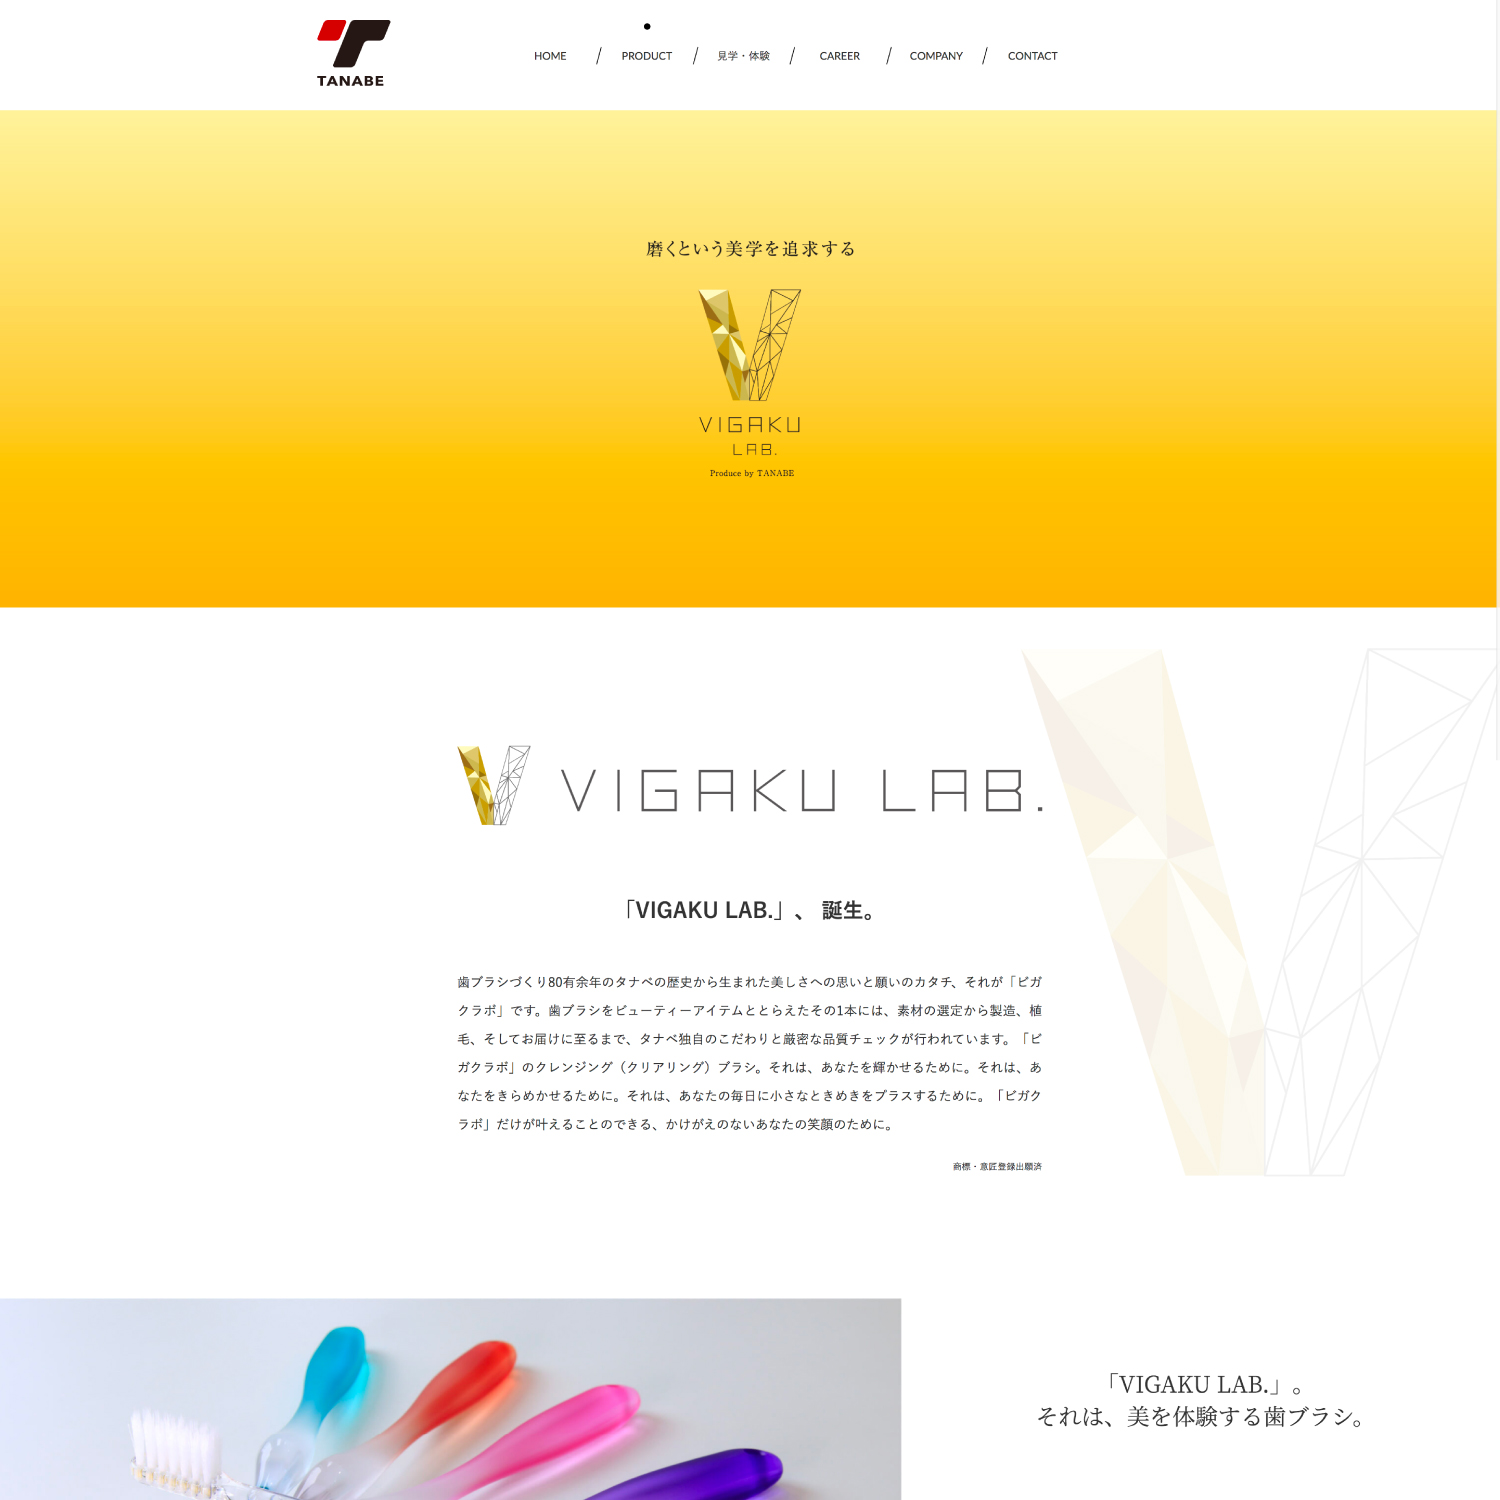 Tanabe_Product